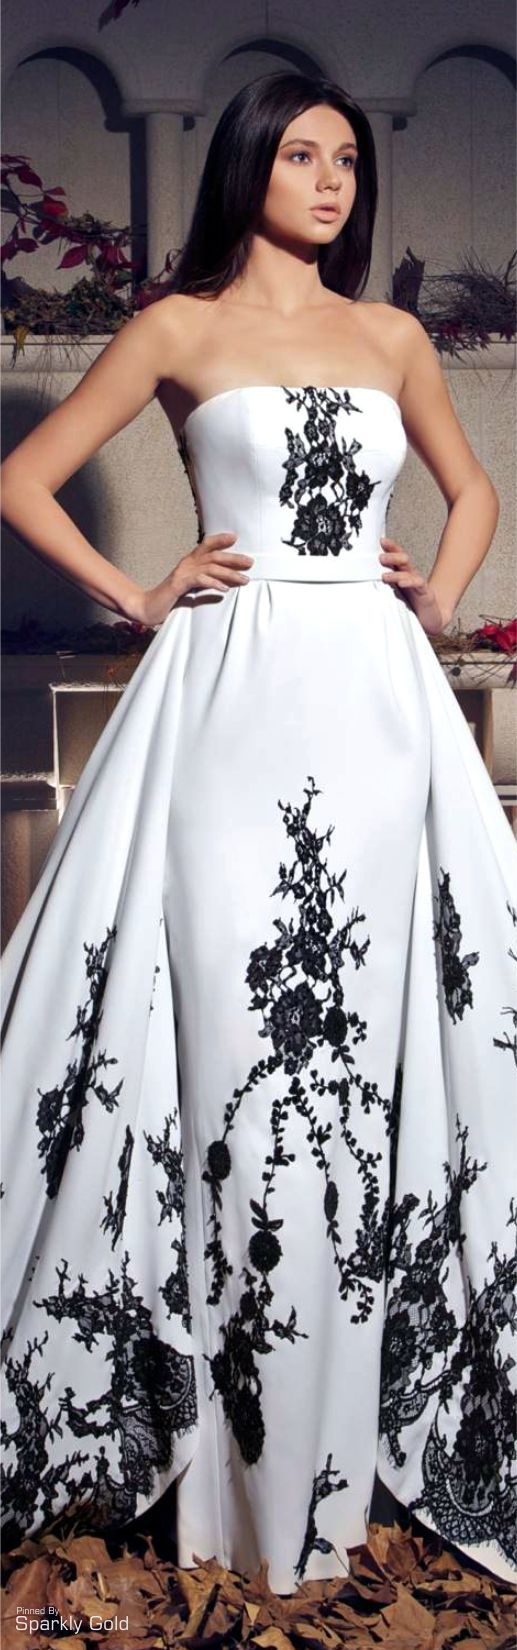 Tarek Sinno ~ White Strapless Ball Gown w Black Floral Embroidery 2015